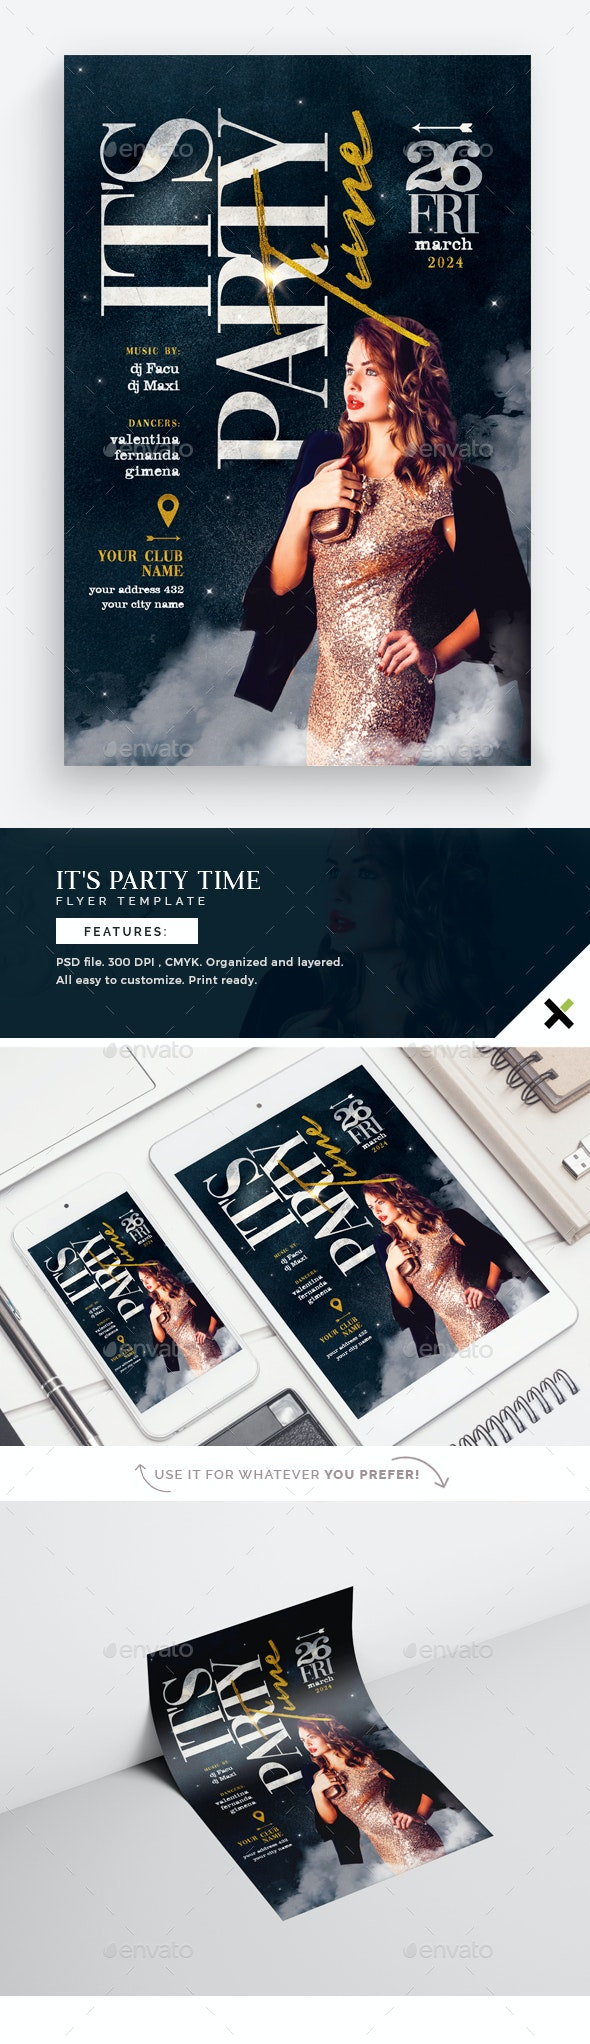 It's Party Time Flyer Template - Flyers Print Templates